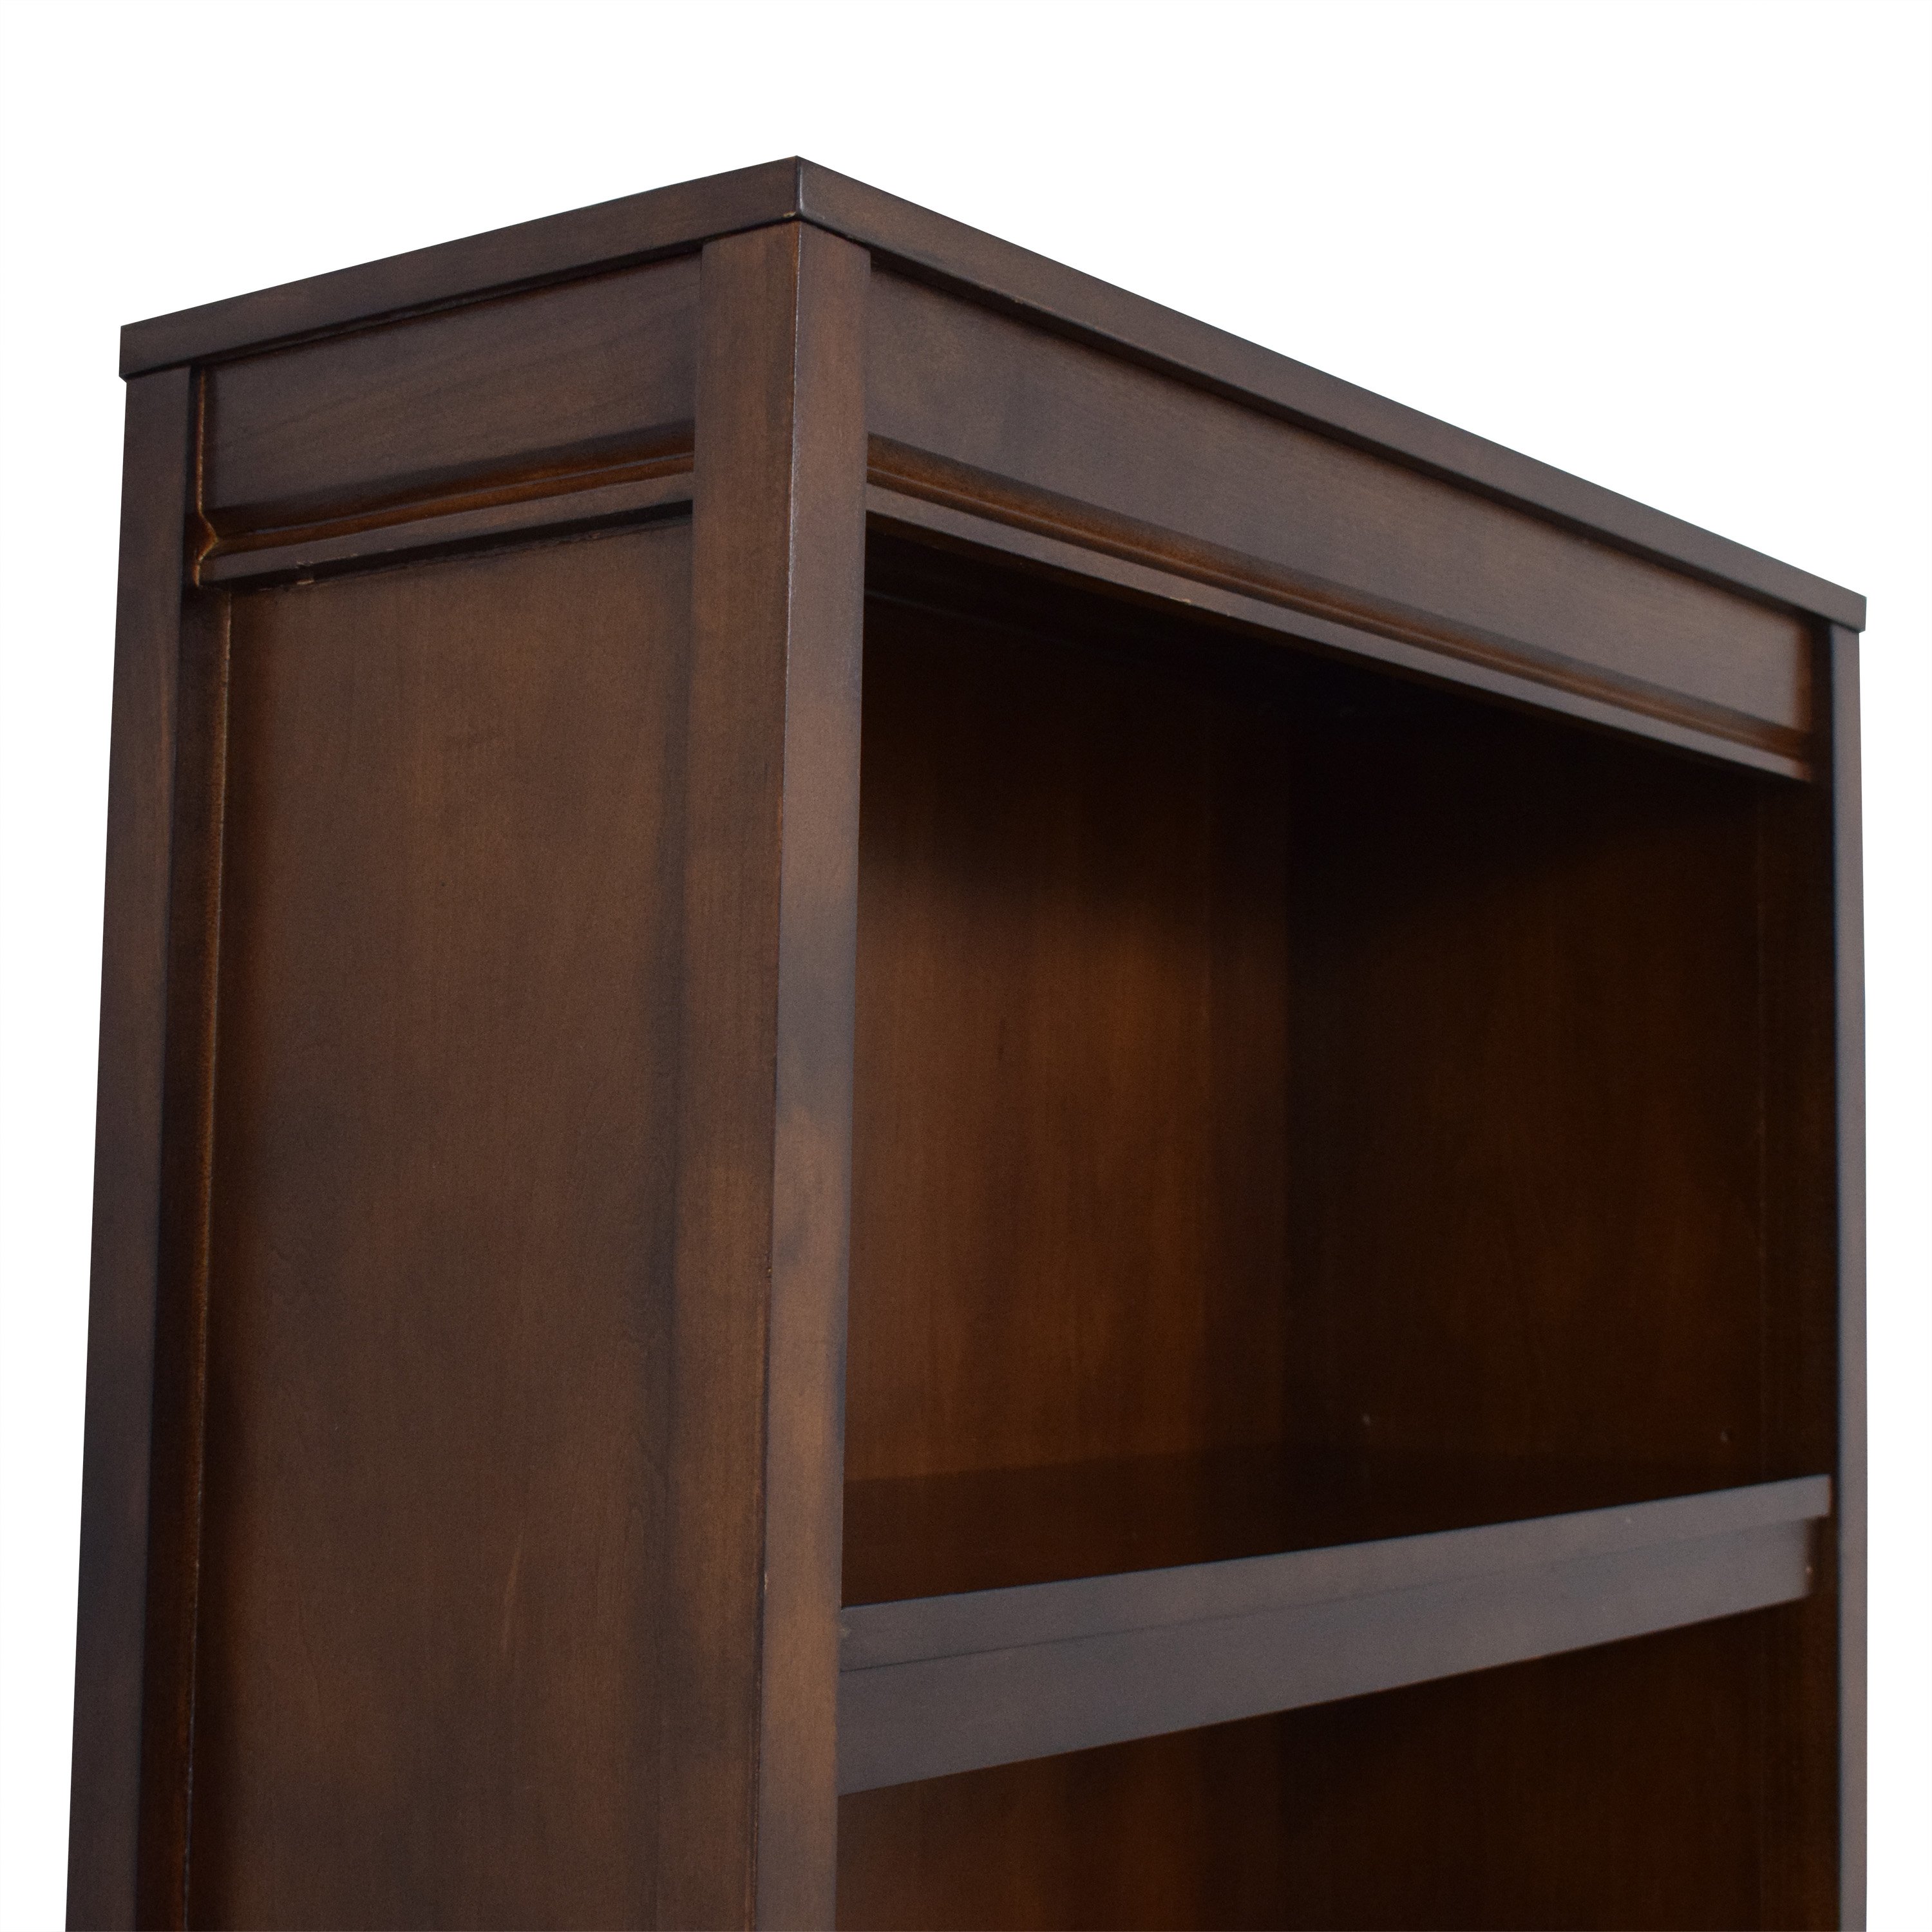 Crate & Barrel Crate & Barrel Peyton Bookcase for sale